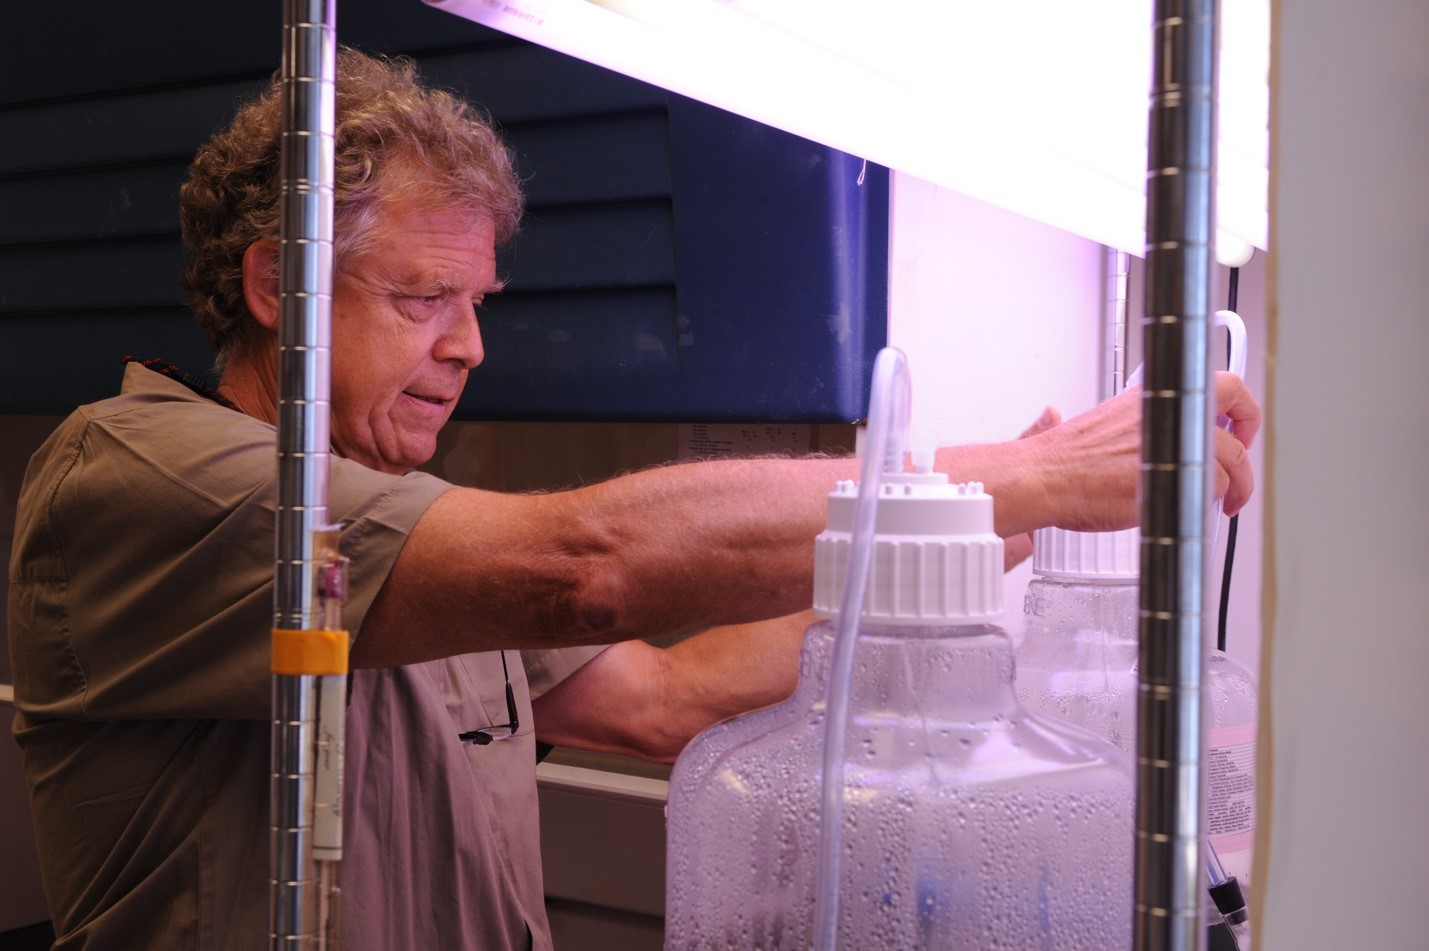 a man examines water samples in big plastic containers